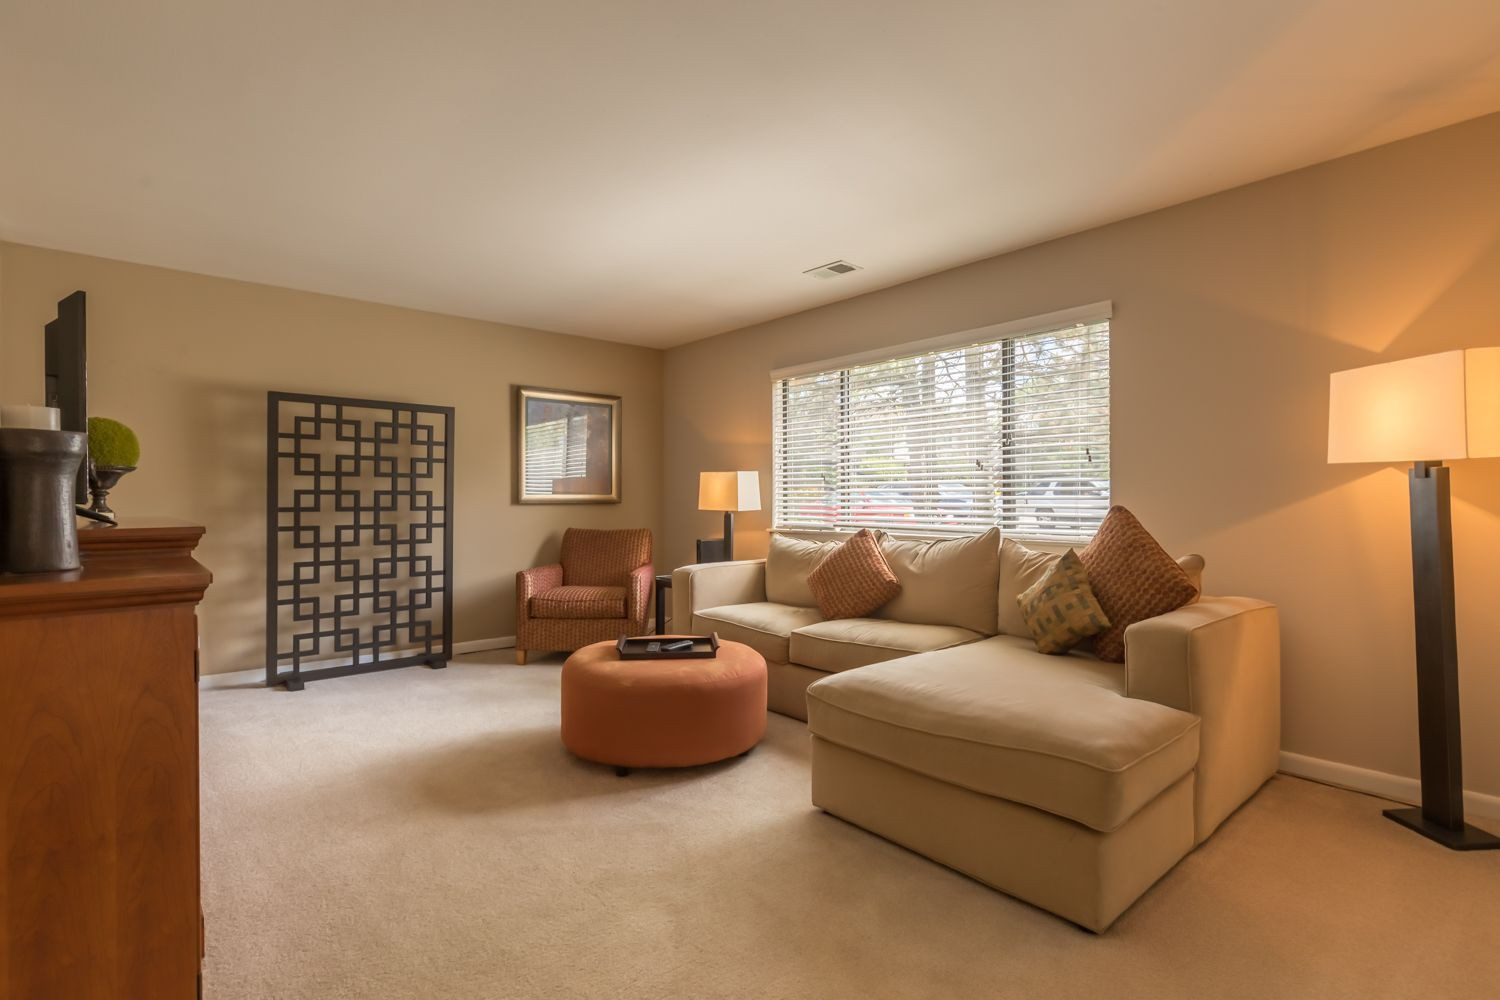 Apartments Near MWU Brook Hill for Midwestern University Students in Downers Grove, IL